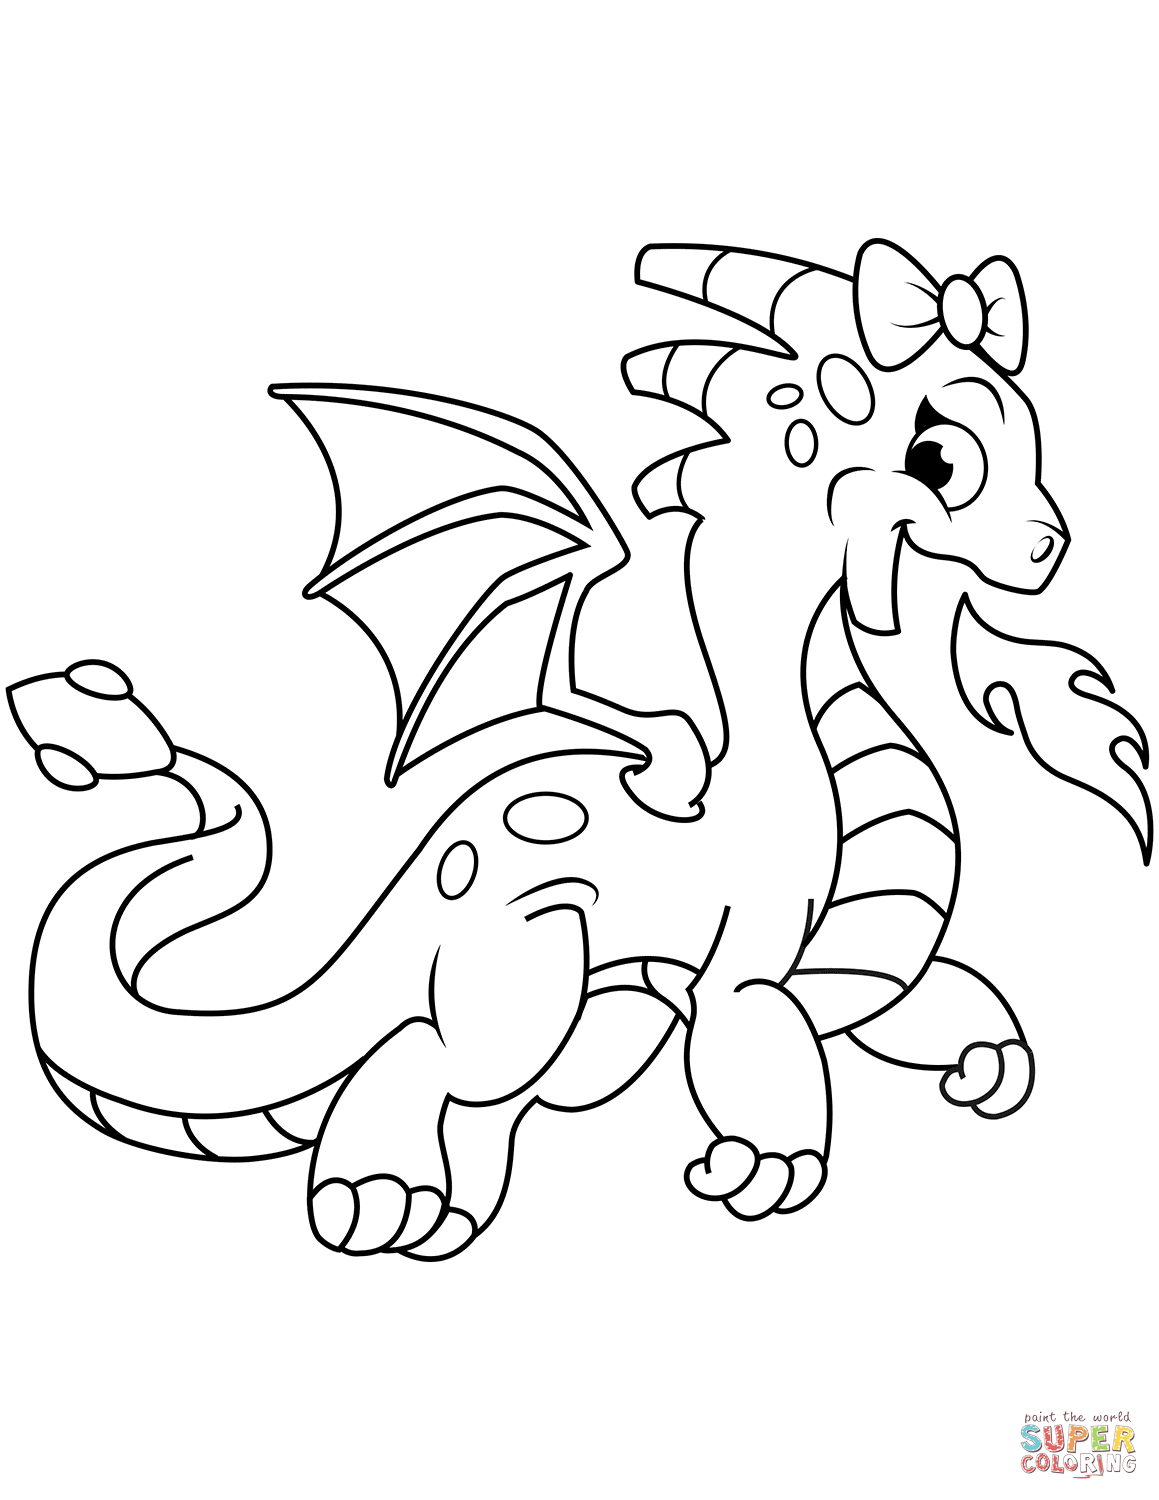 kawaii dragon coloring pages cute dragon breathing fire coloring page free printable pages dragon coloring kawaii